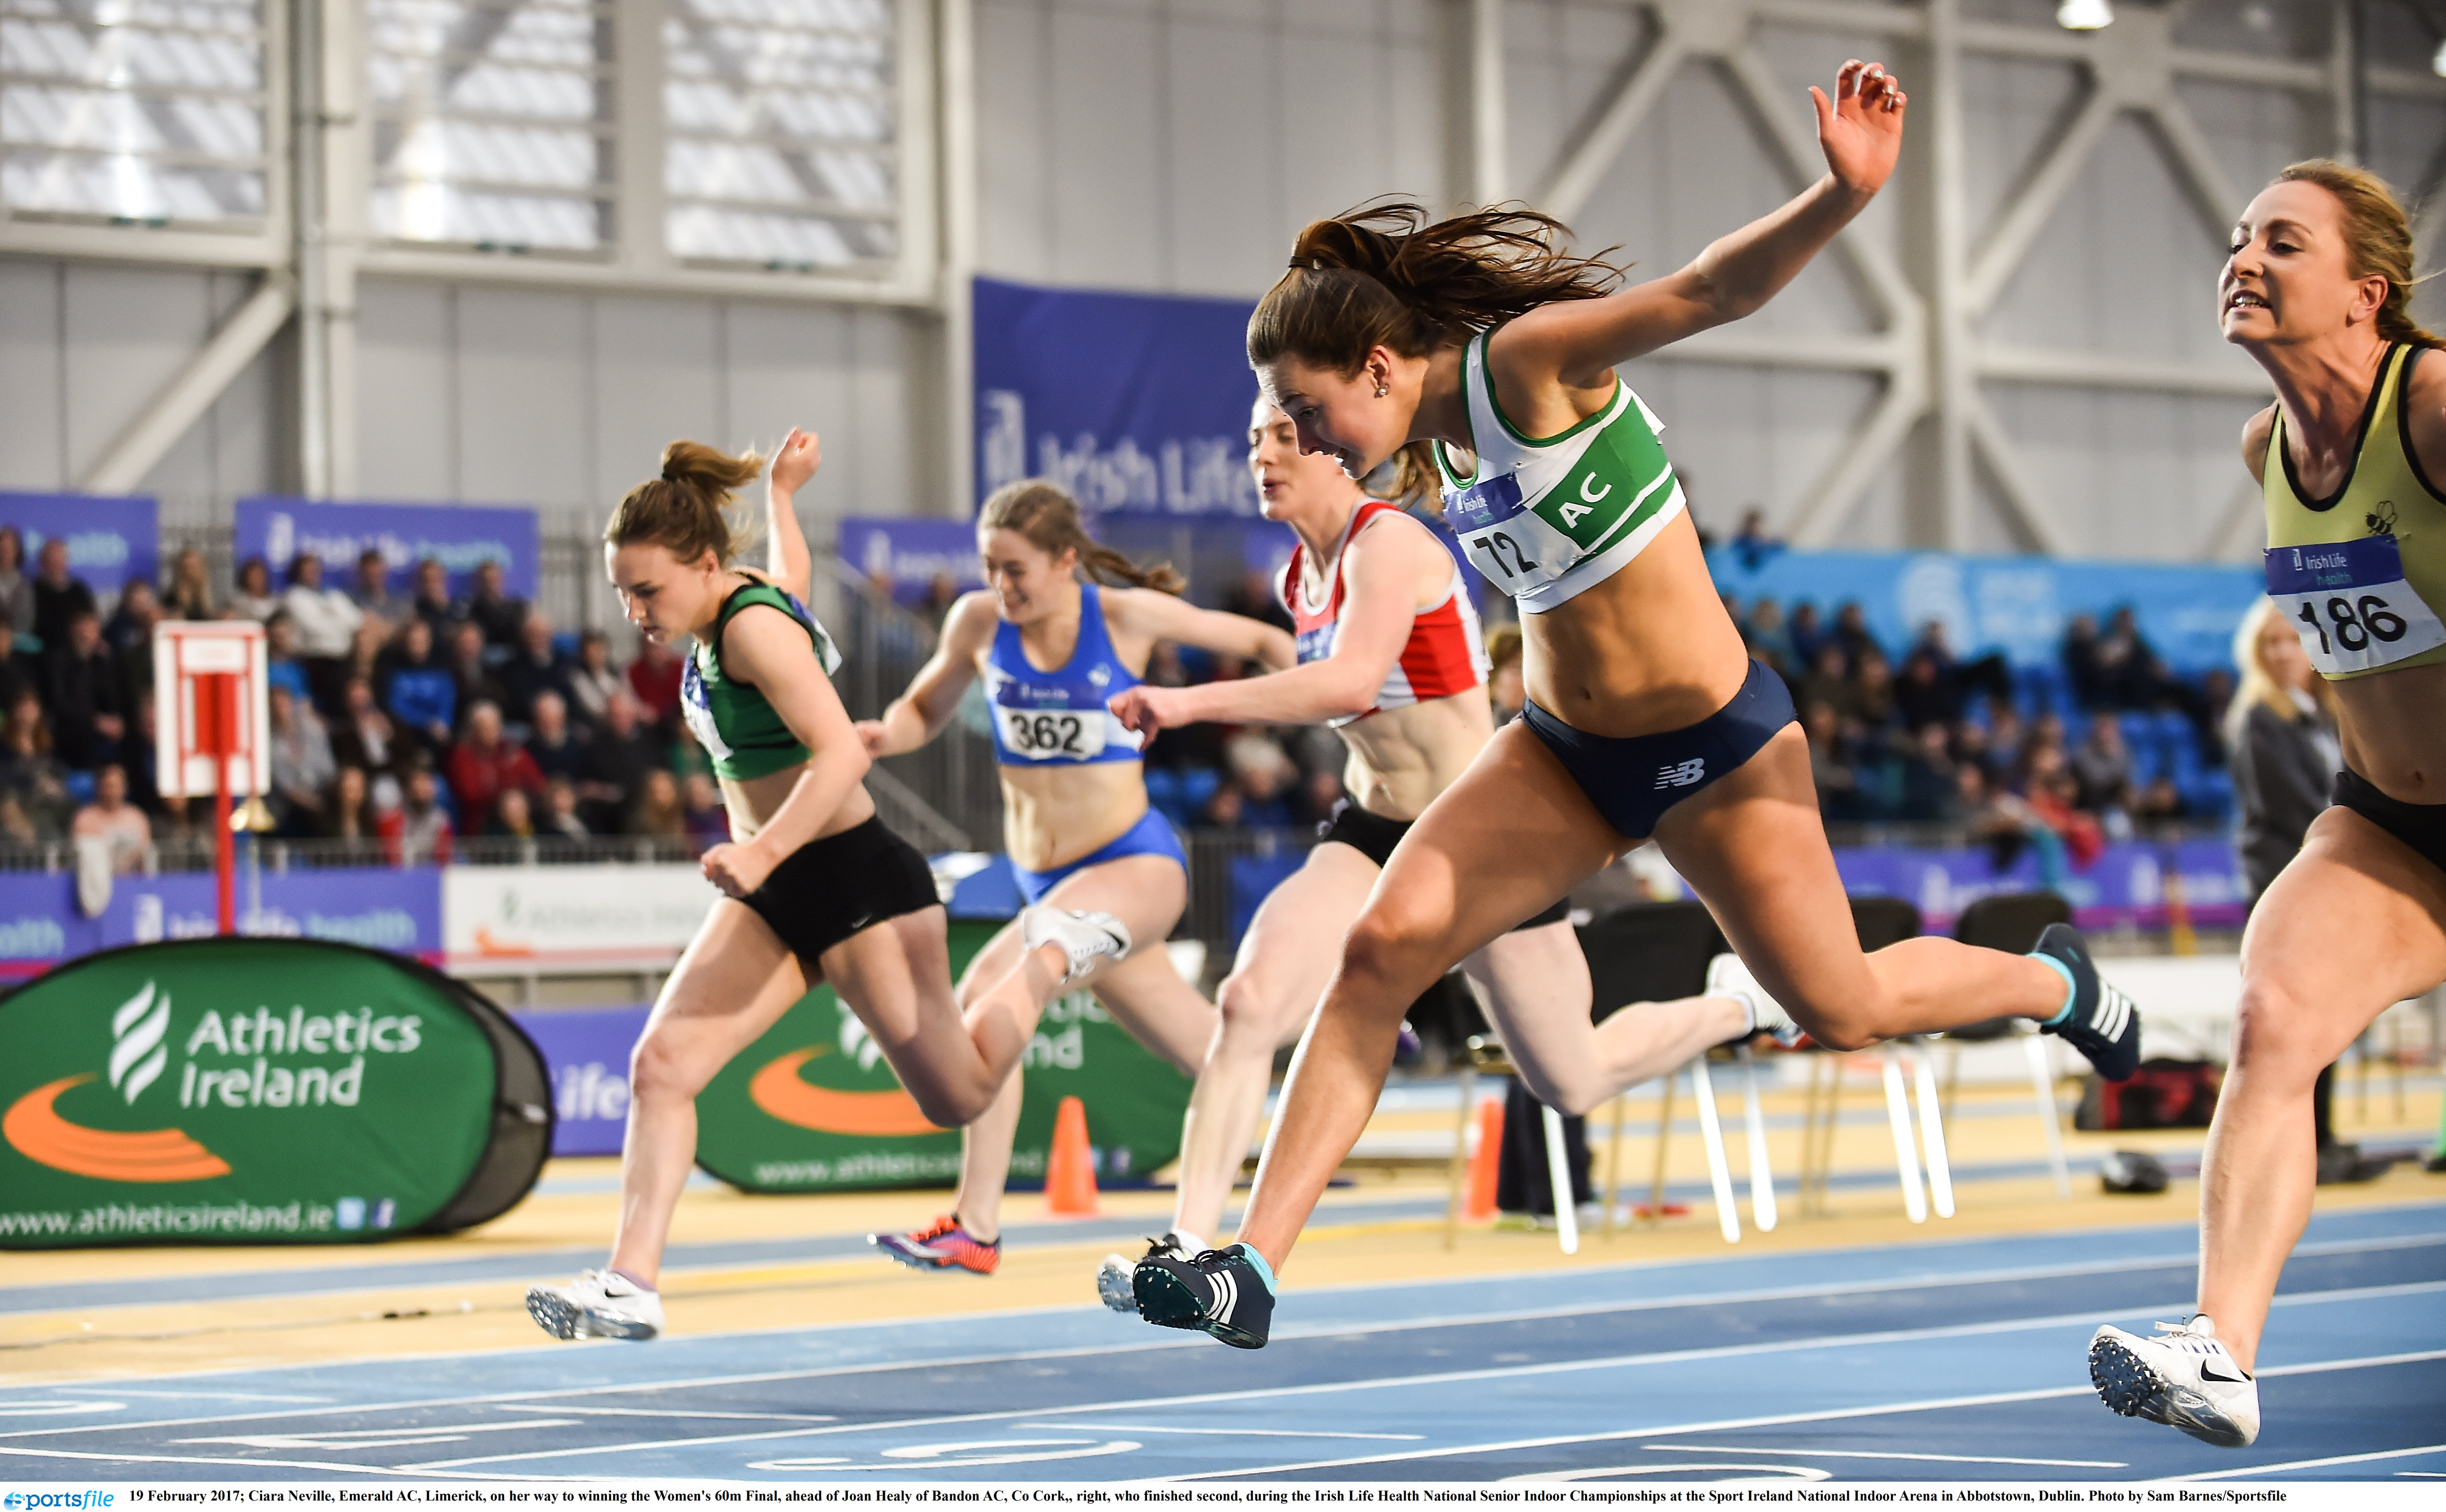 Provisional Entry List for National Senior Indoor Championships